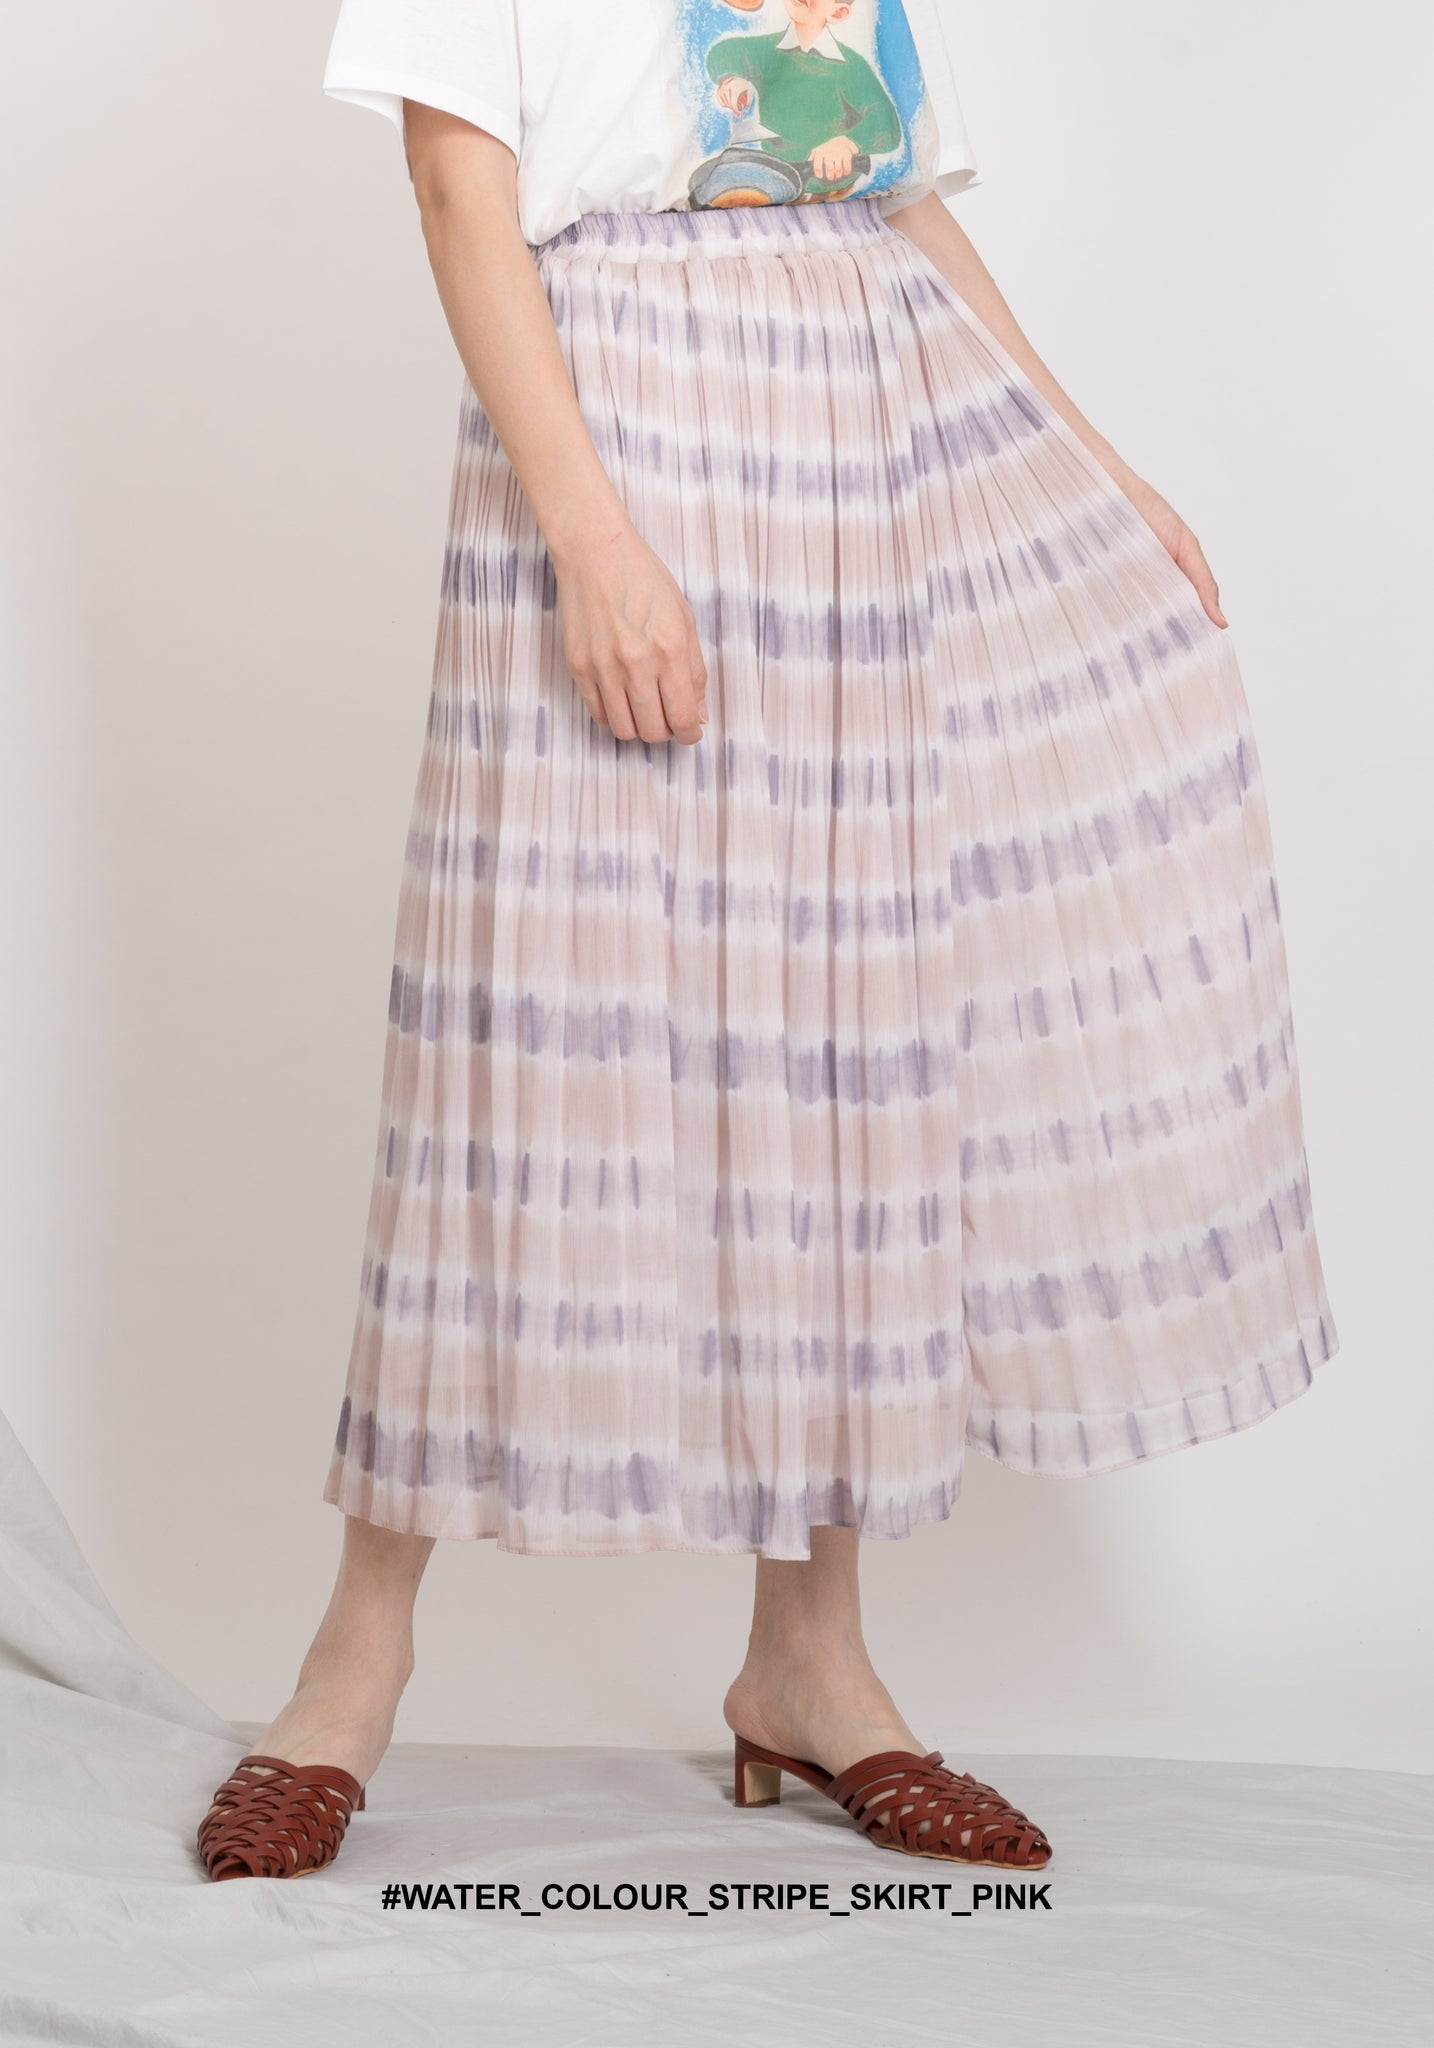 Water Colour Stripe Skirt Pink - whoami